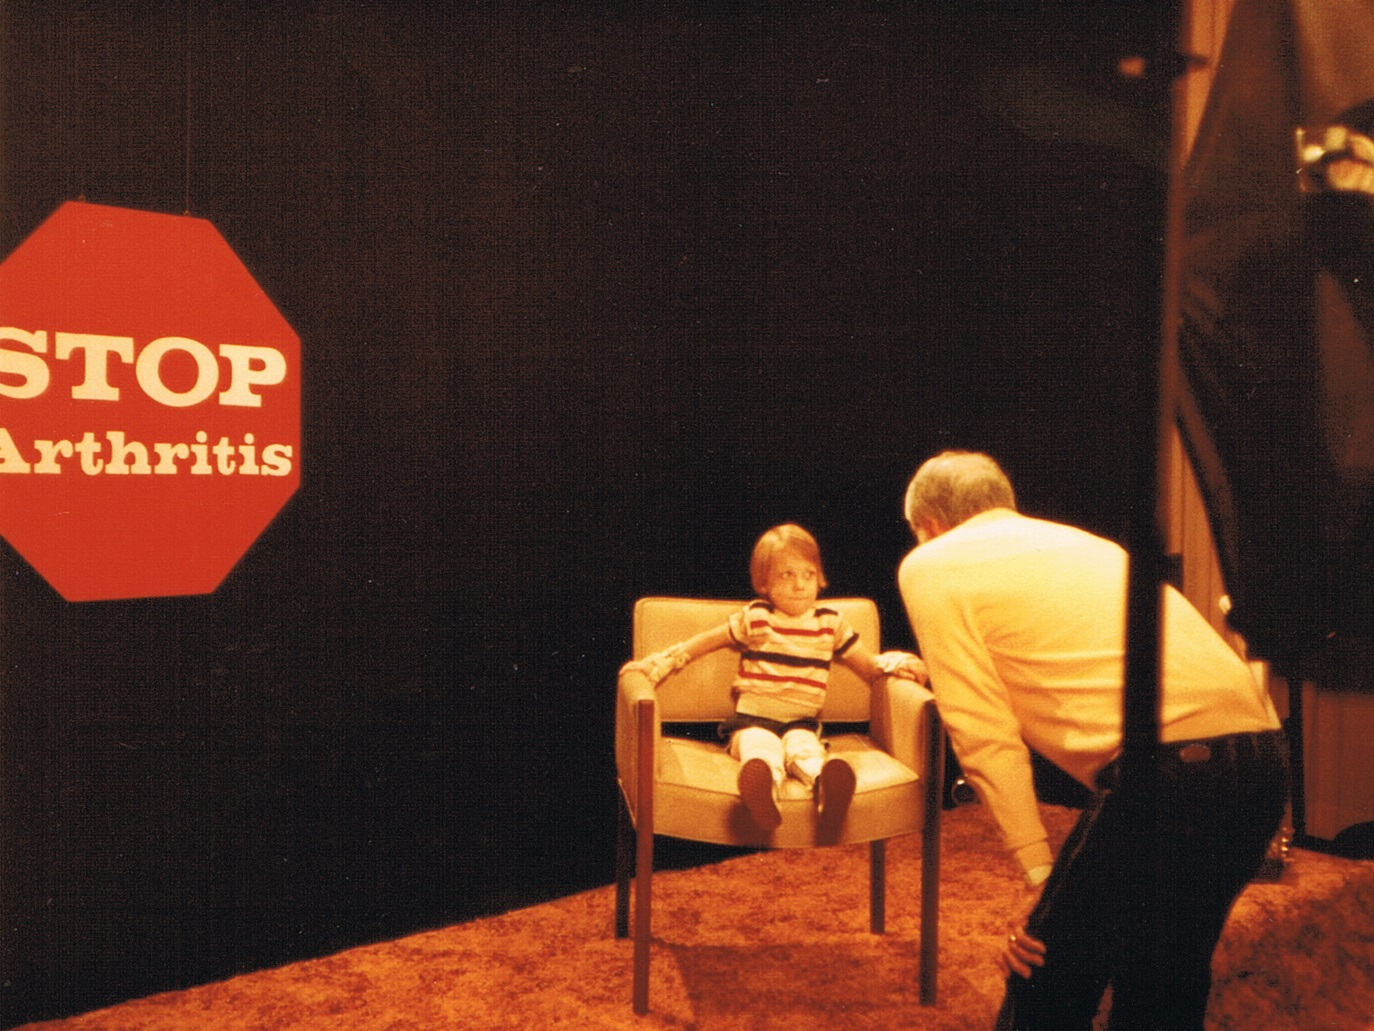 Mathew Sands on an Arthritis Research Foundation fundraising telethon in the early 1980s - courtesy of Mathew Sands